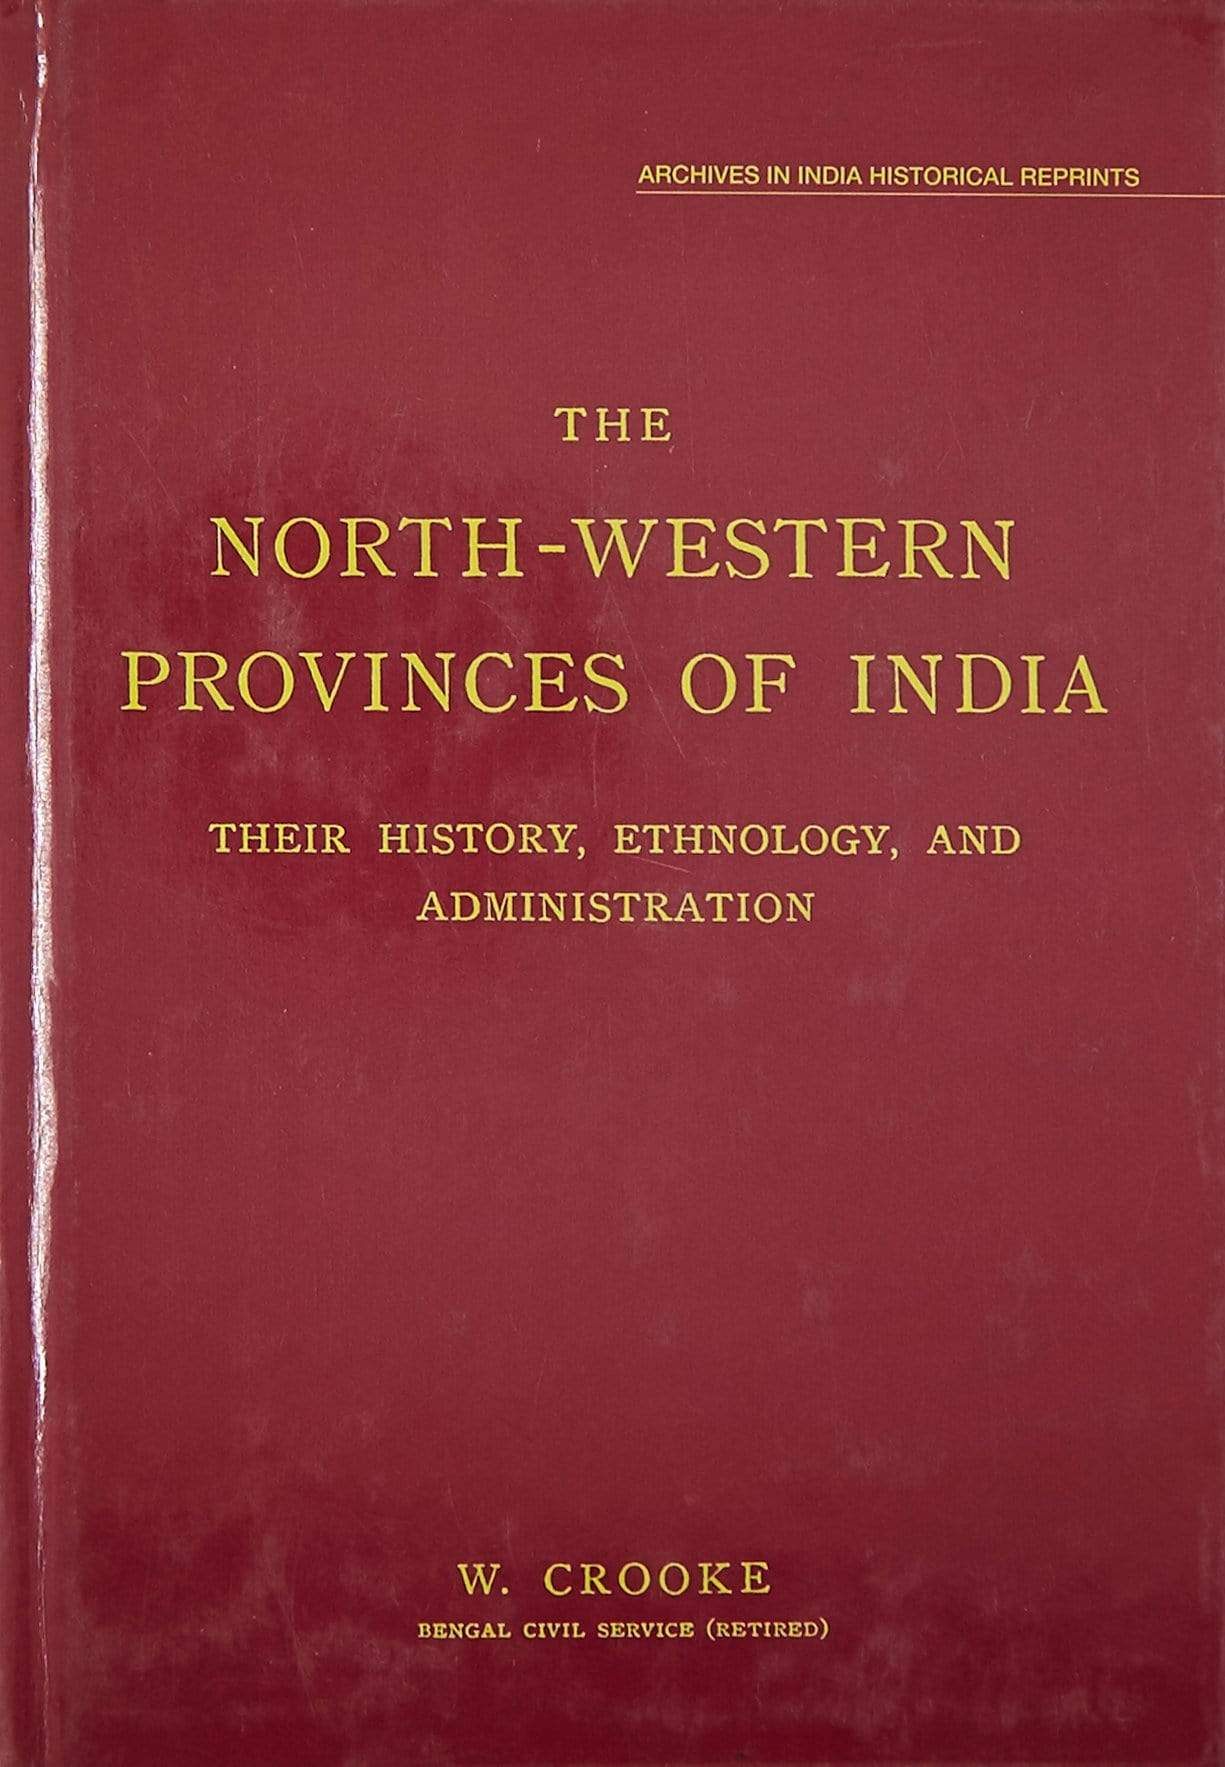 North-western Provinces Of India, The: Their History, Ethnology And Administration